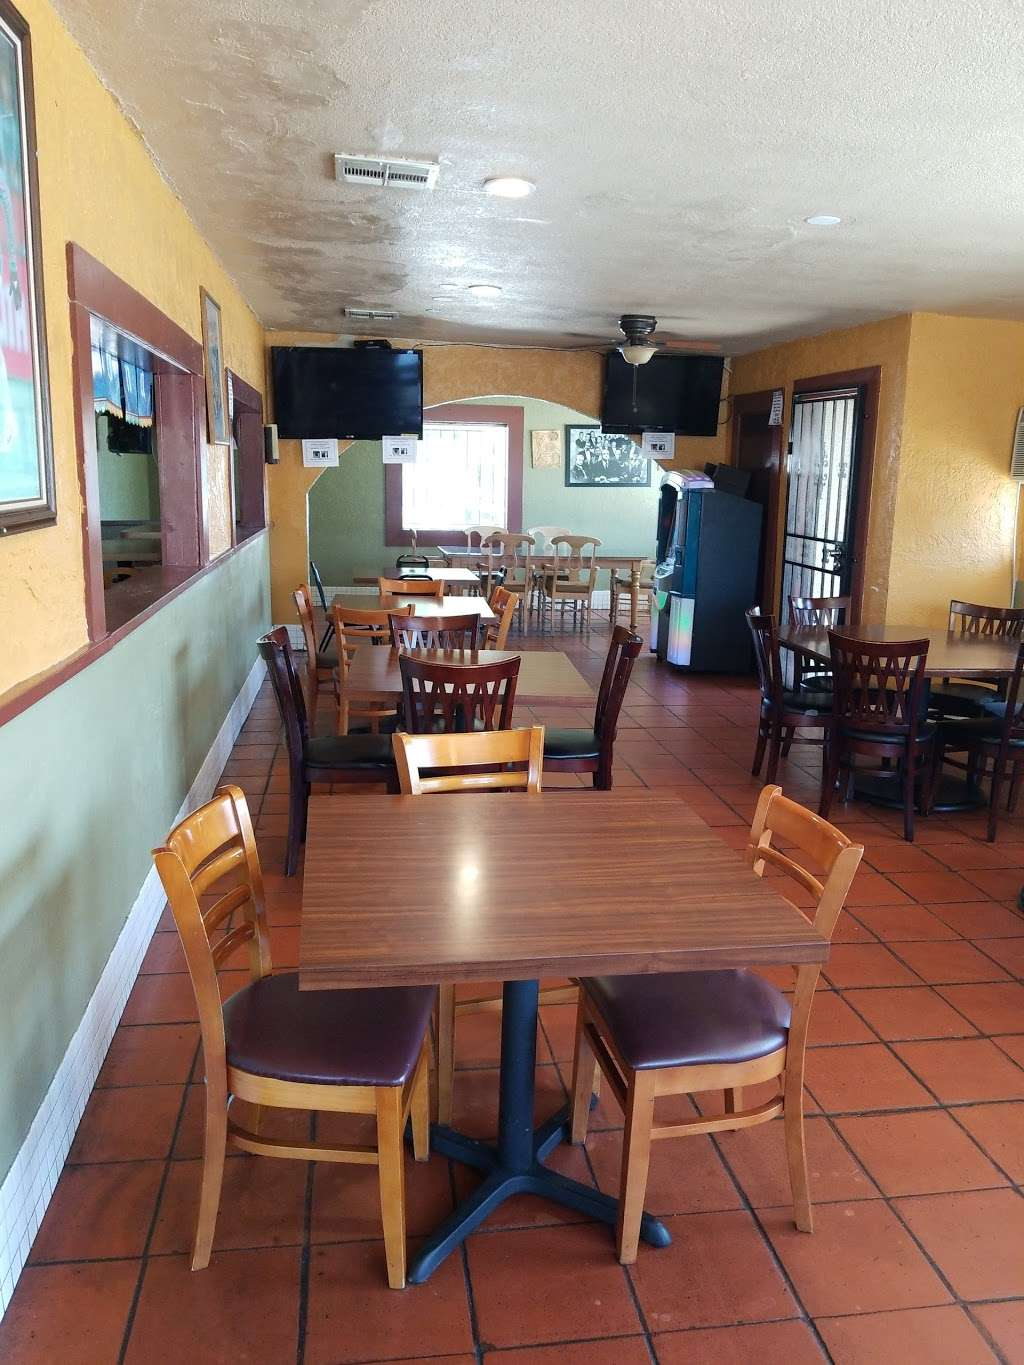 Gardunos Sports Bar and Grill - meal delivery  | Photo 2 of 10 | Address: 9823 Valley Blvd, El Monte, CA 91731, USA | Phone: (626) 448-4746